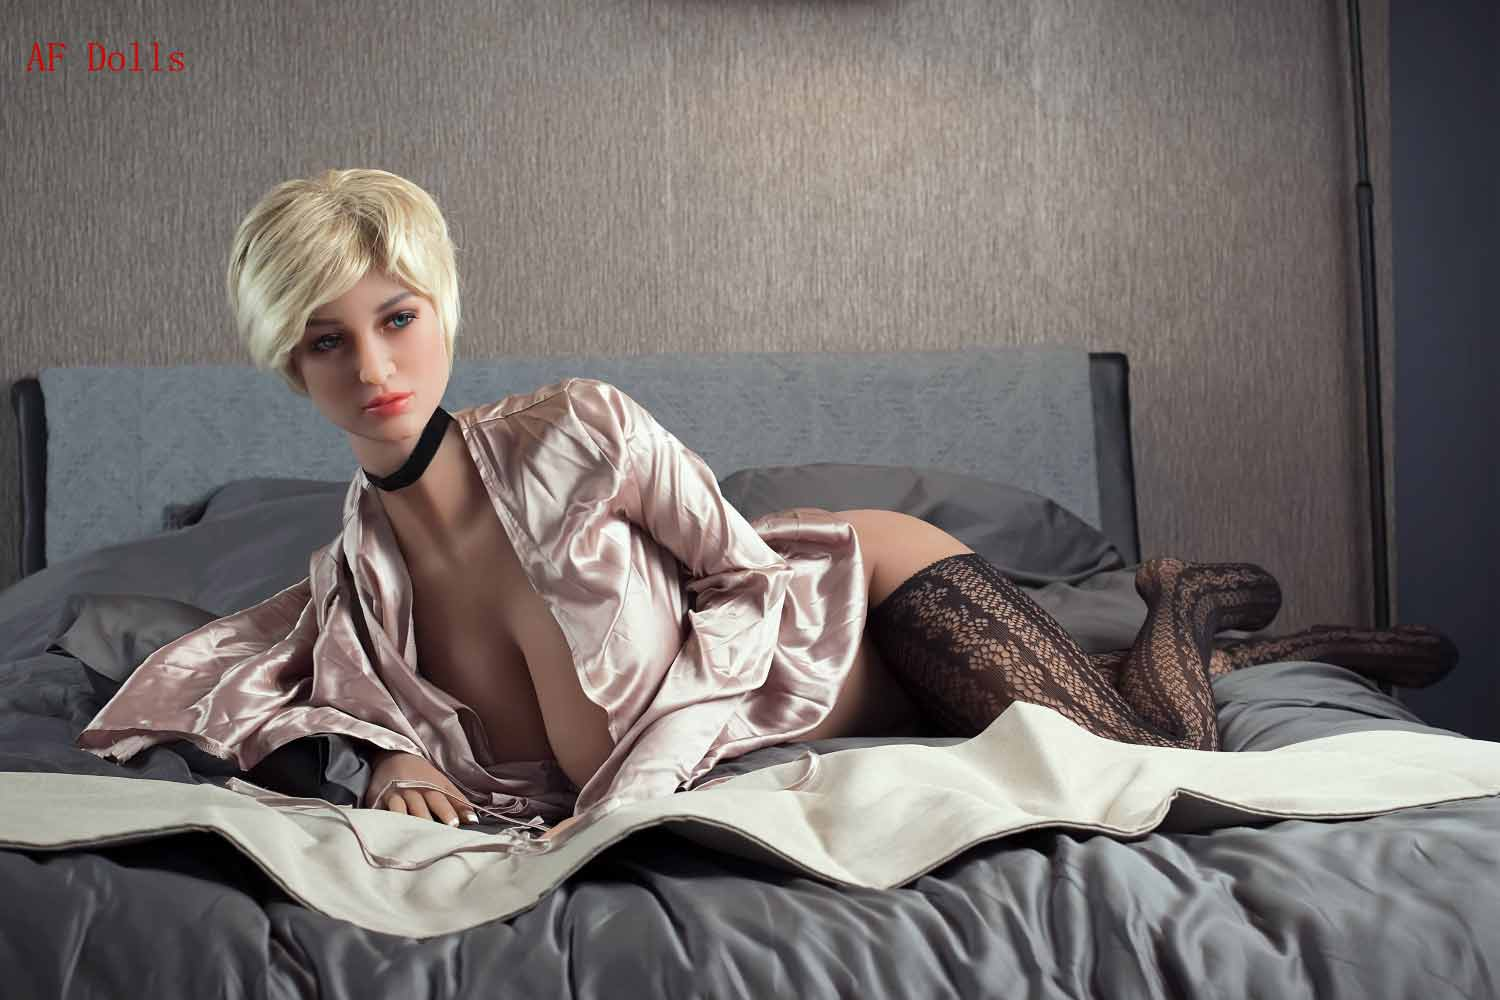 Big breasted sex doll with blond hair